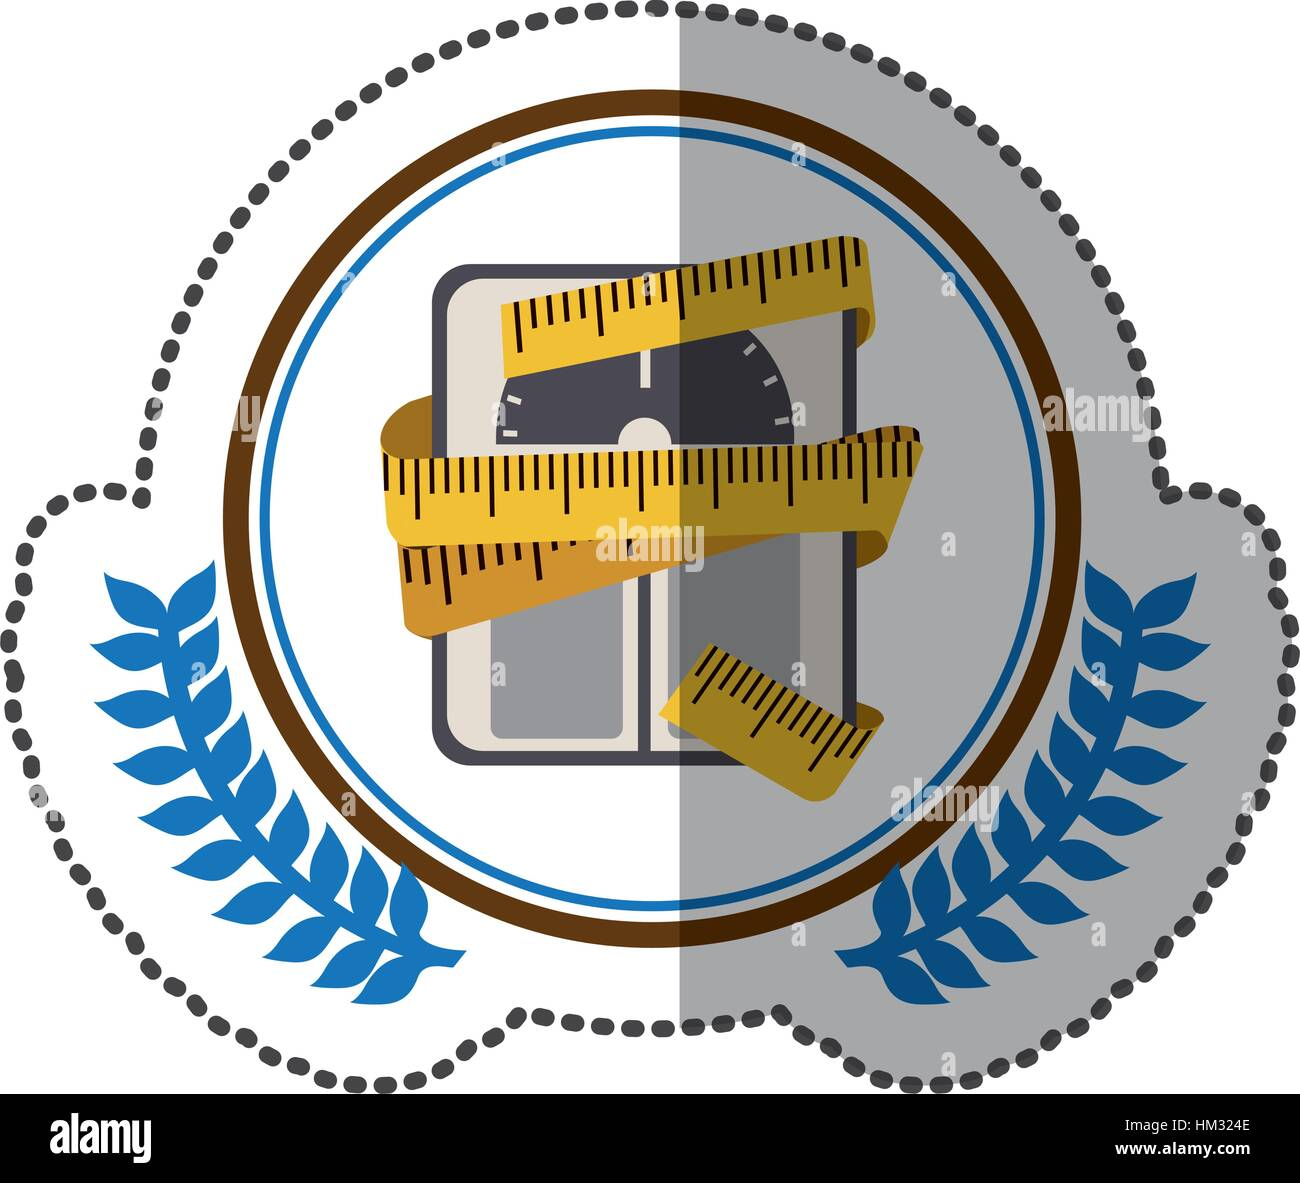 middle shadow sticker colorful with olive crown with scales for weight control with tape measure around in circle - Stock Image